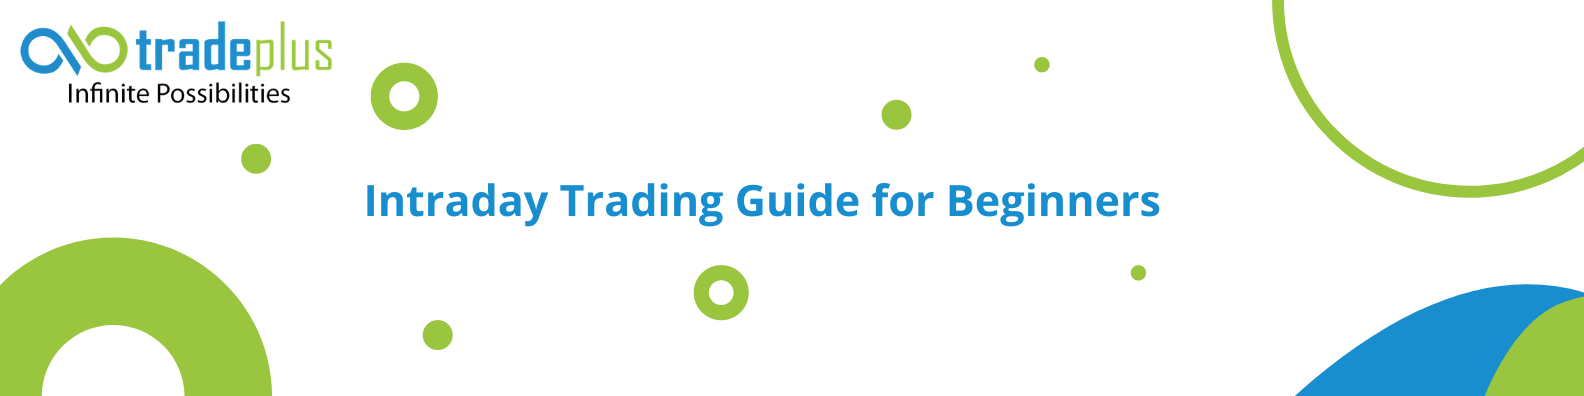 Intraday trading guide for beginners 1 Intraday Trading Guide for Beginners